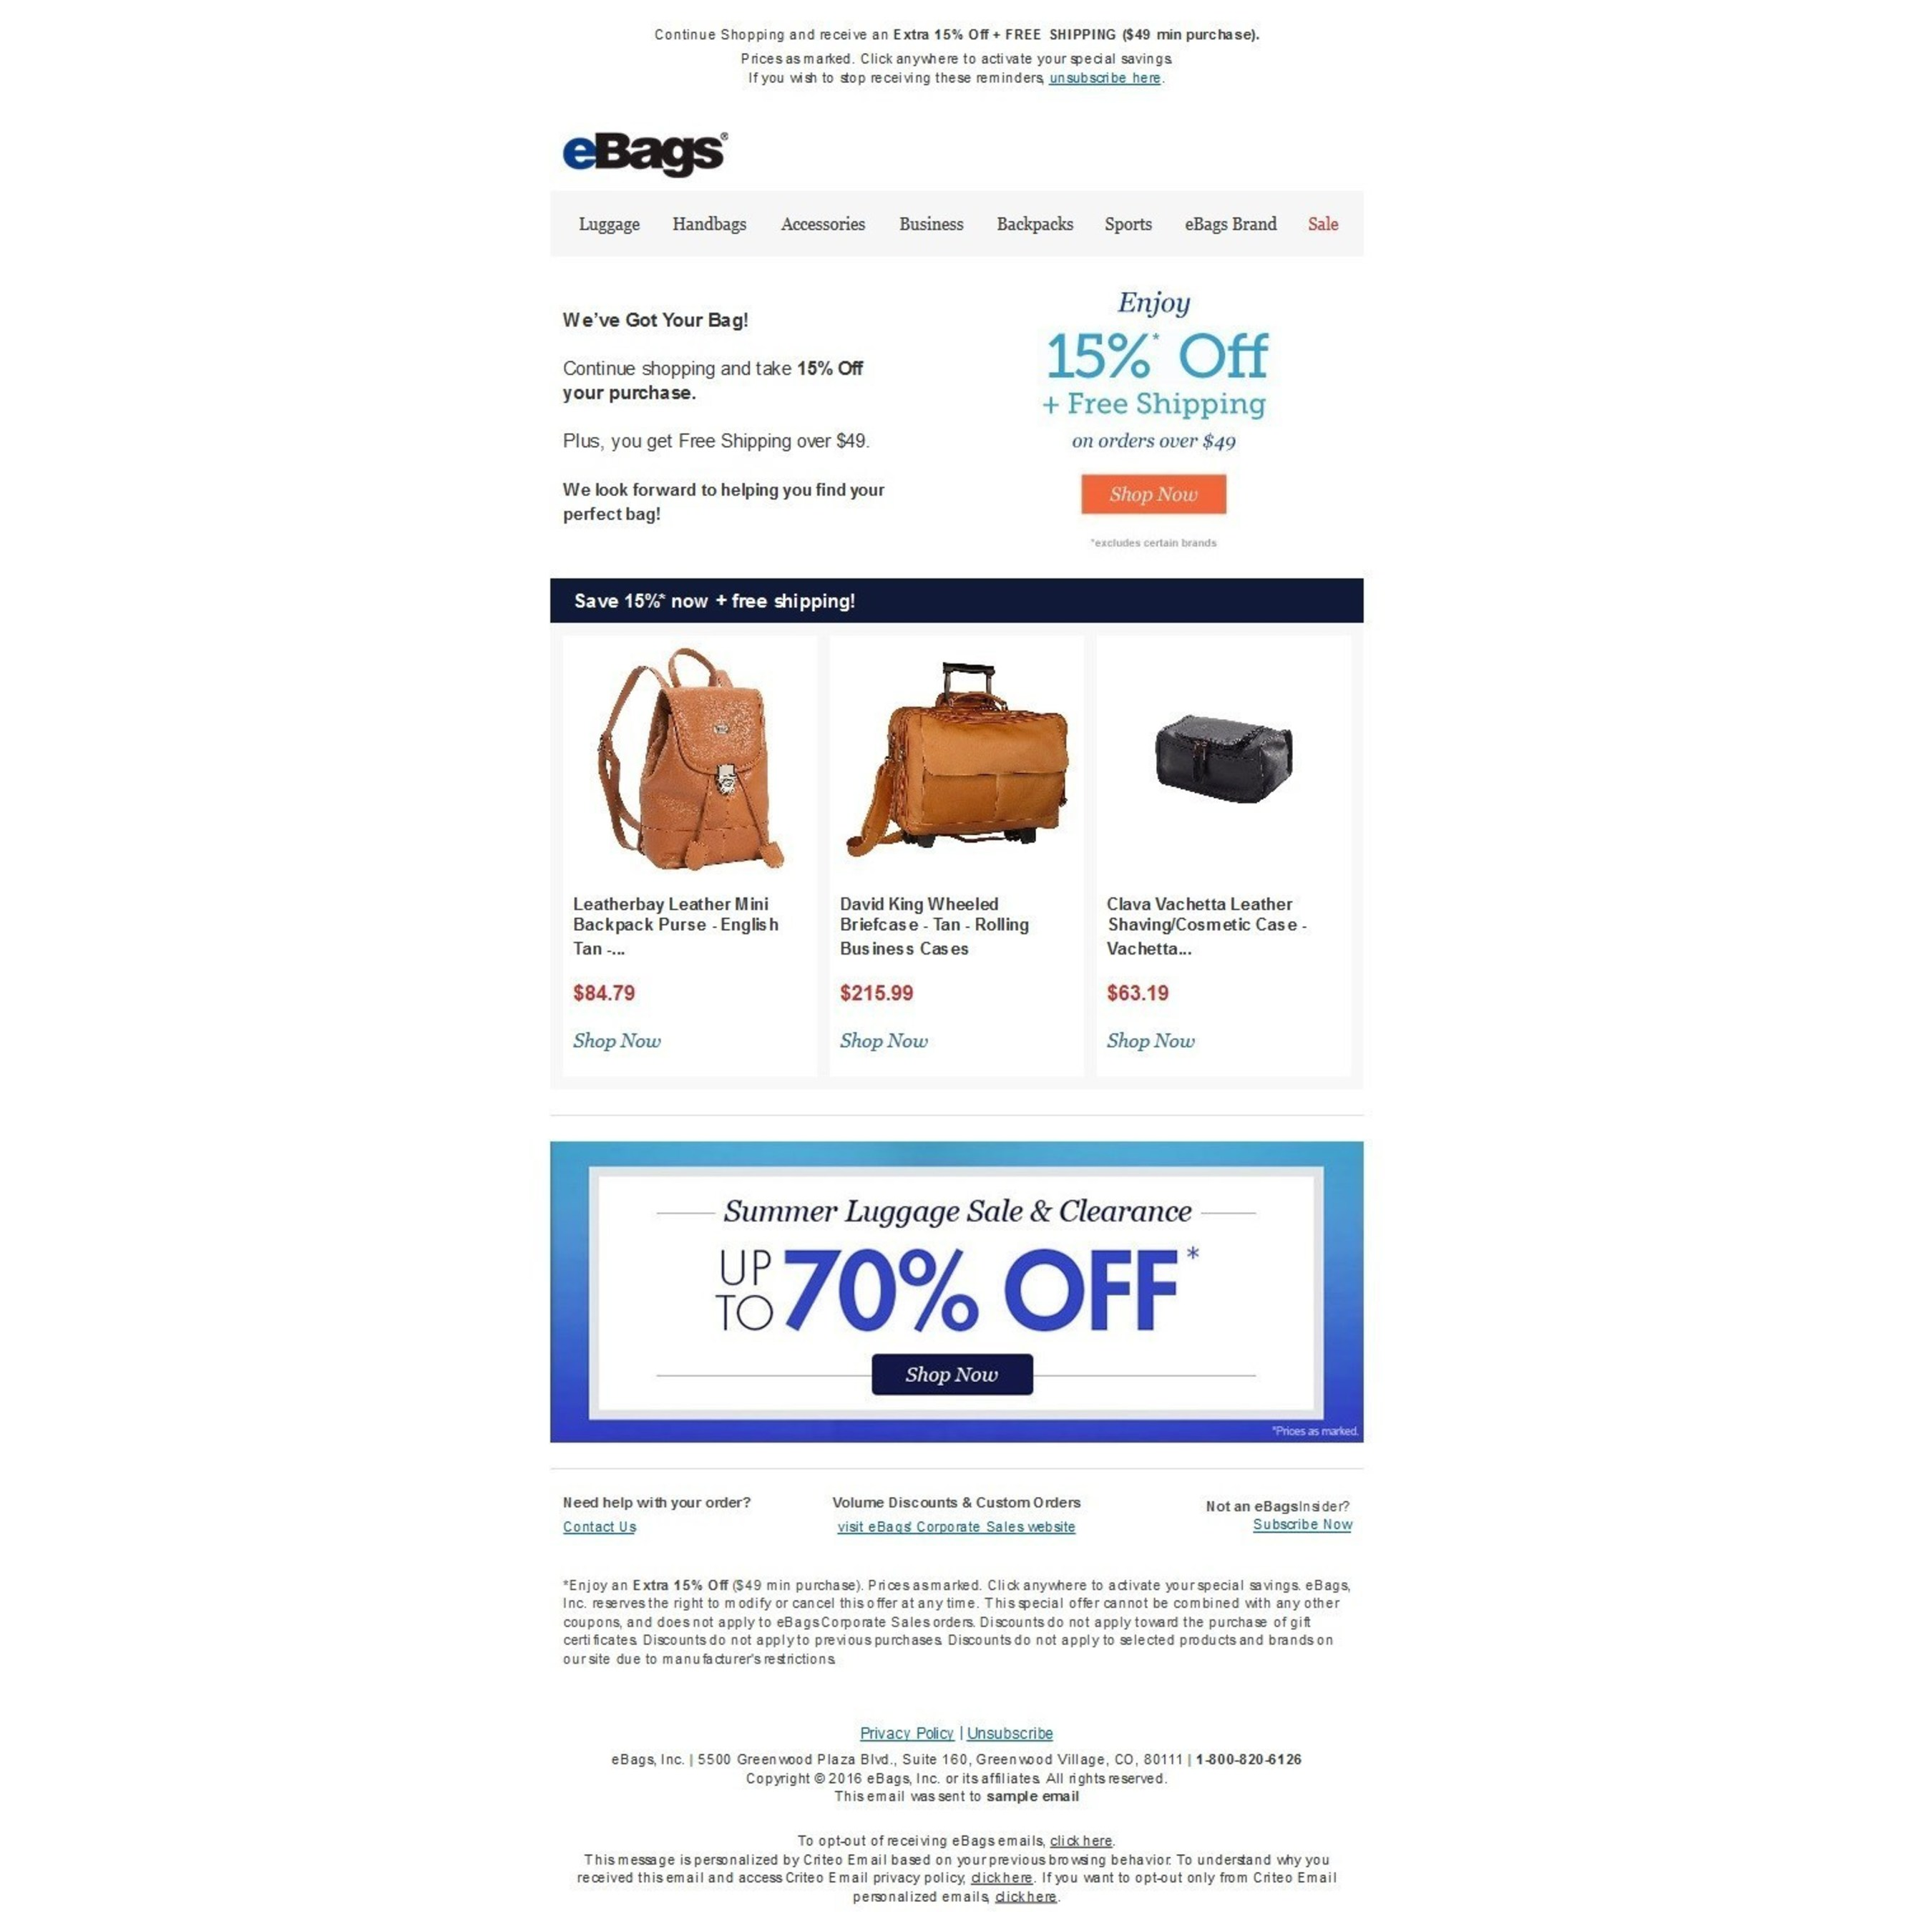 Example of an eBags retargeted email to a consumer powered by Criteo Dynamic Email.